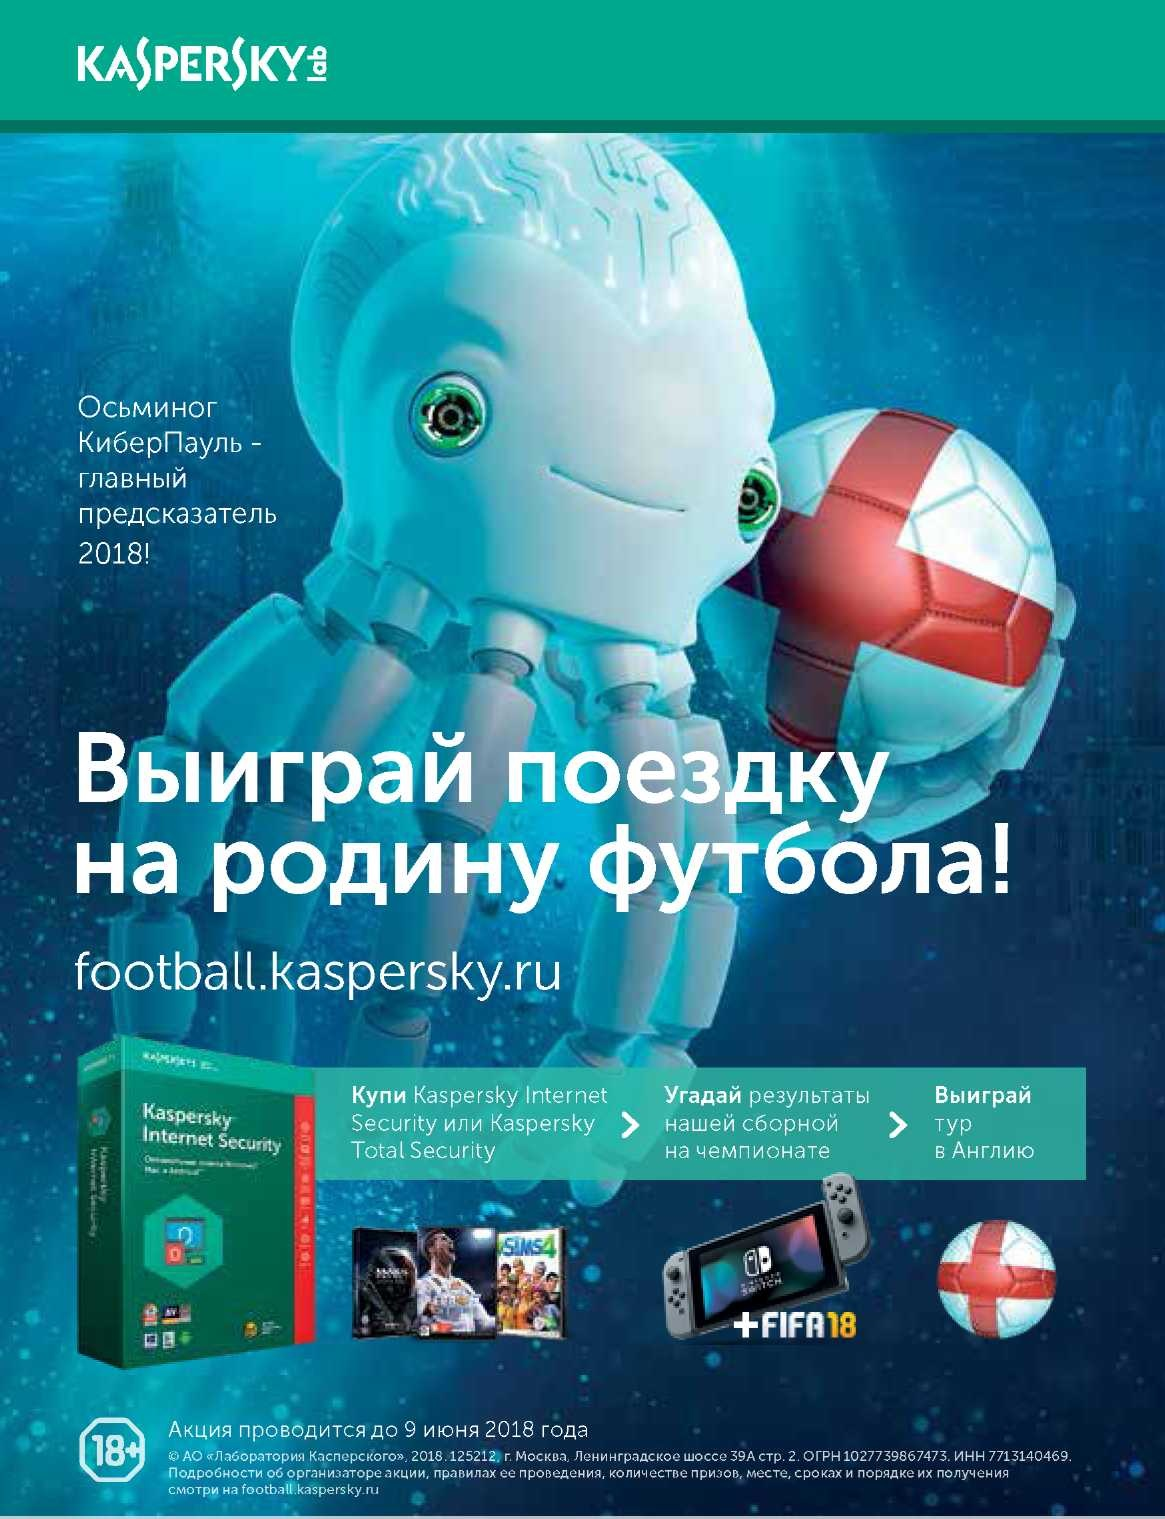 Kaspersky Internet Security: Renewal*: 2 Device. RU